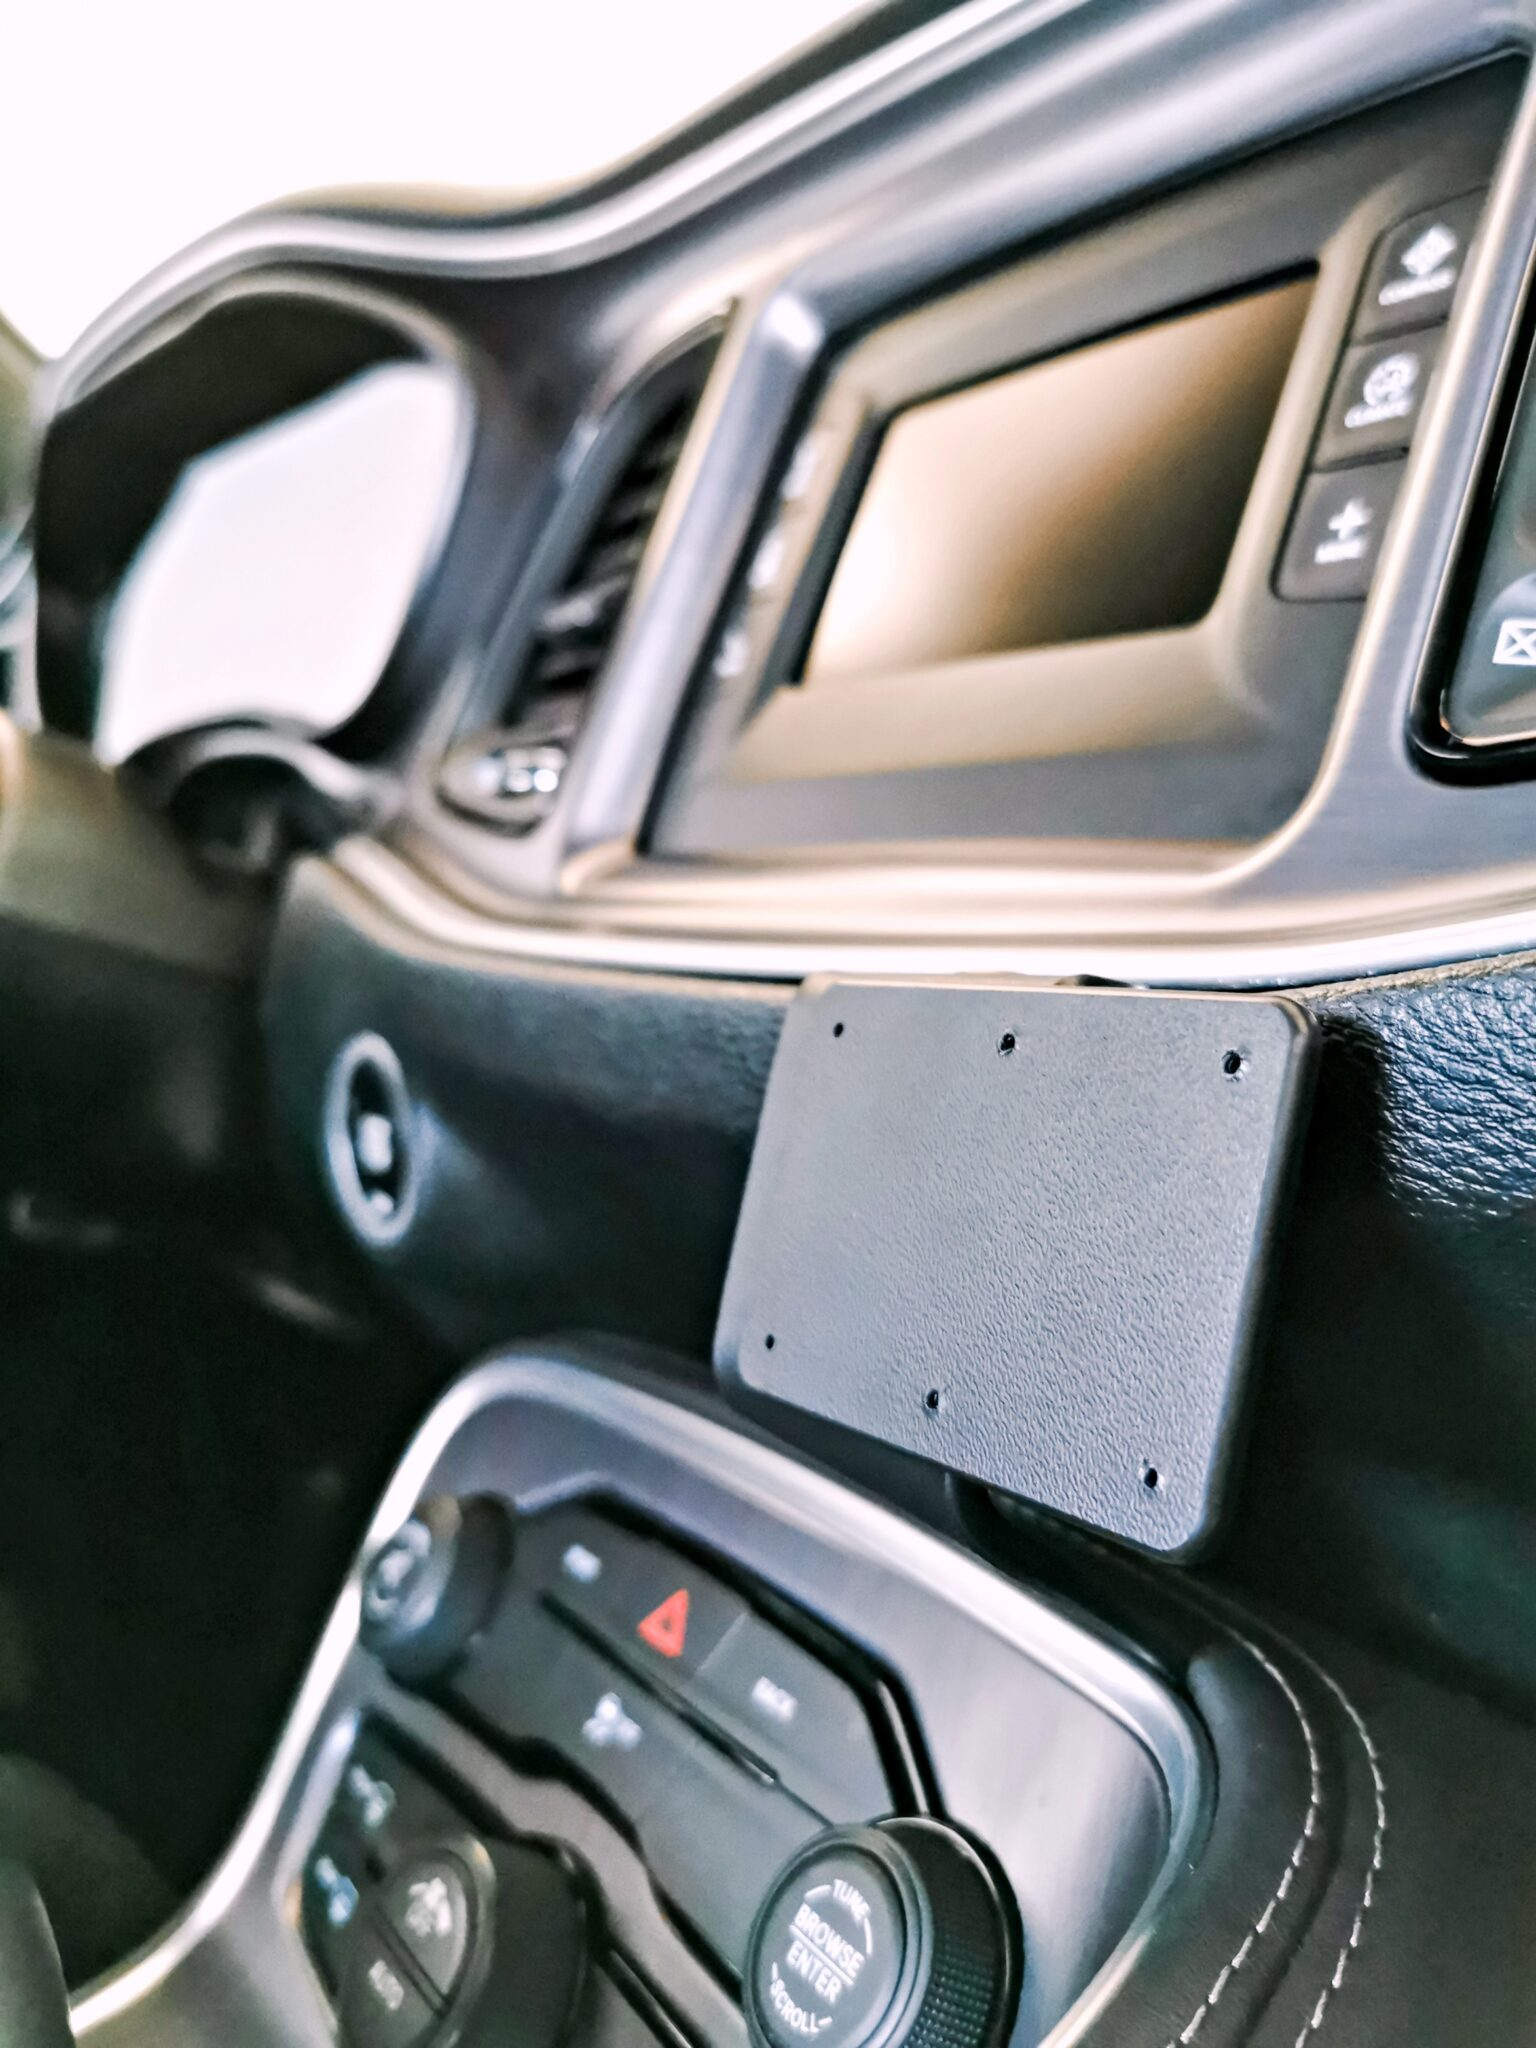 The dashboard of the Dodge Challenger underneath the media screen with ProClip mount installed.